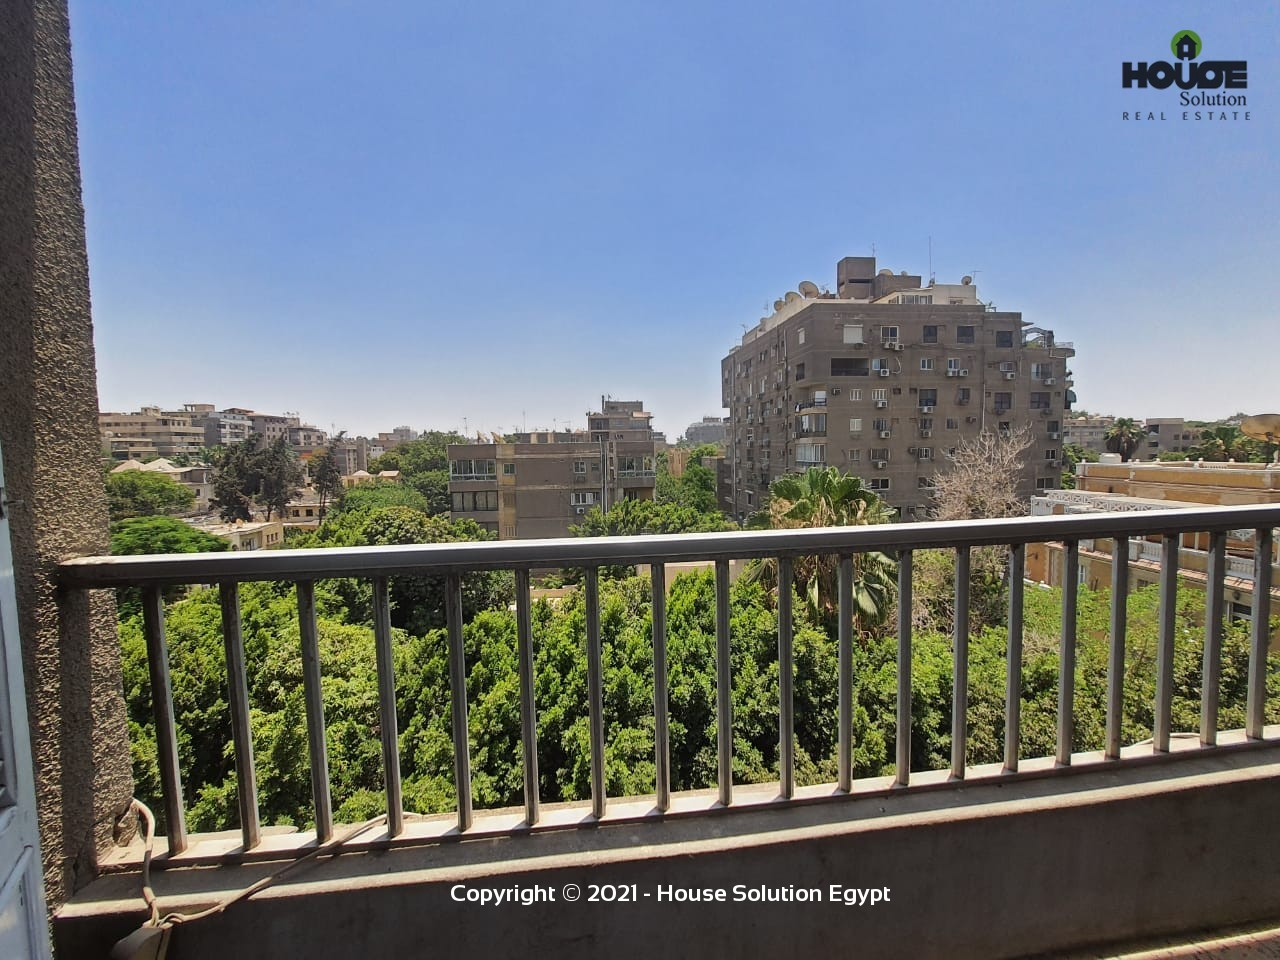 Affordable Semi Furnished Apartment For Rent In Sarayat El Maadi - 4983 Featured Image